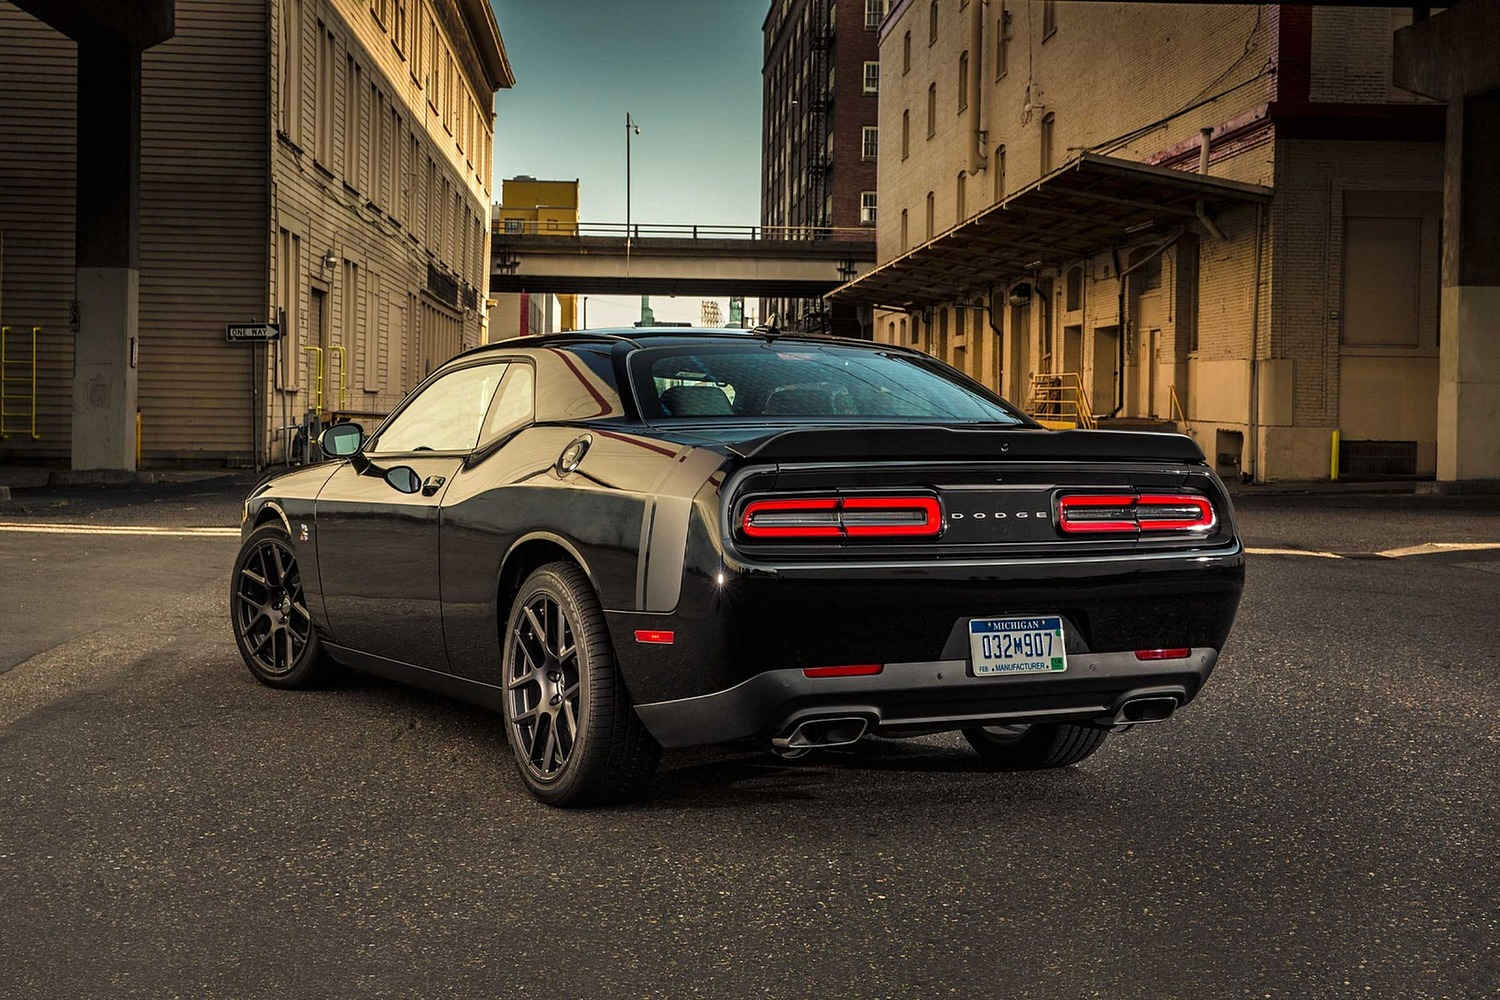 2018 dodge challenger r t scat pack coupe vehie. Black Bedroom Furniture Sets. Home Design Ideas